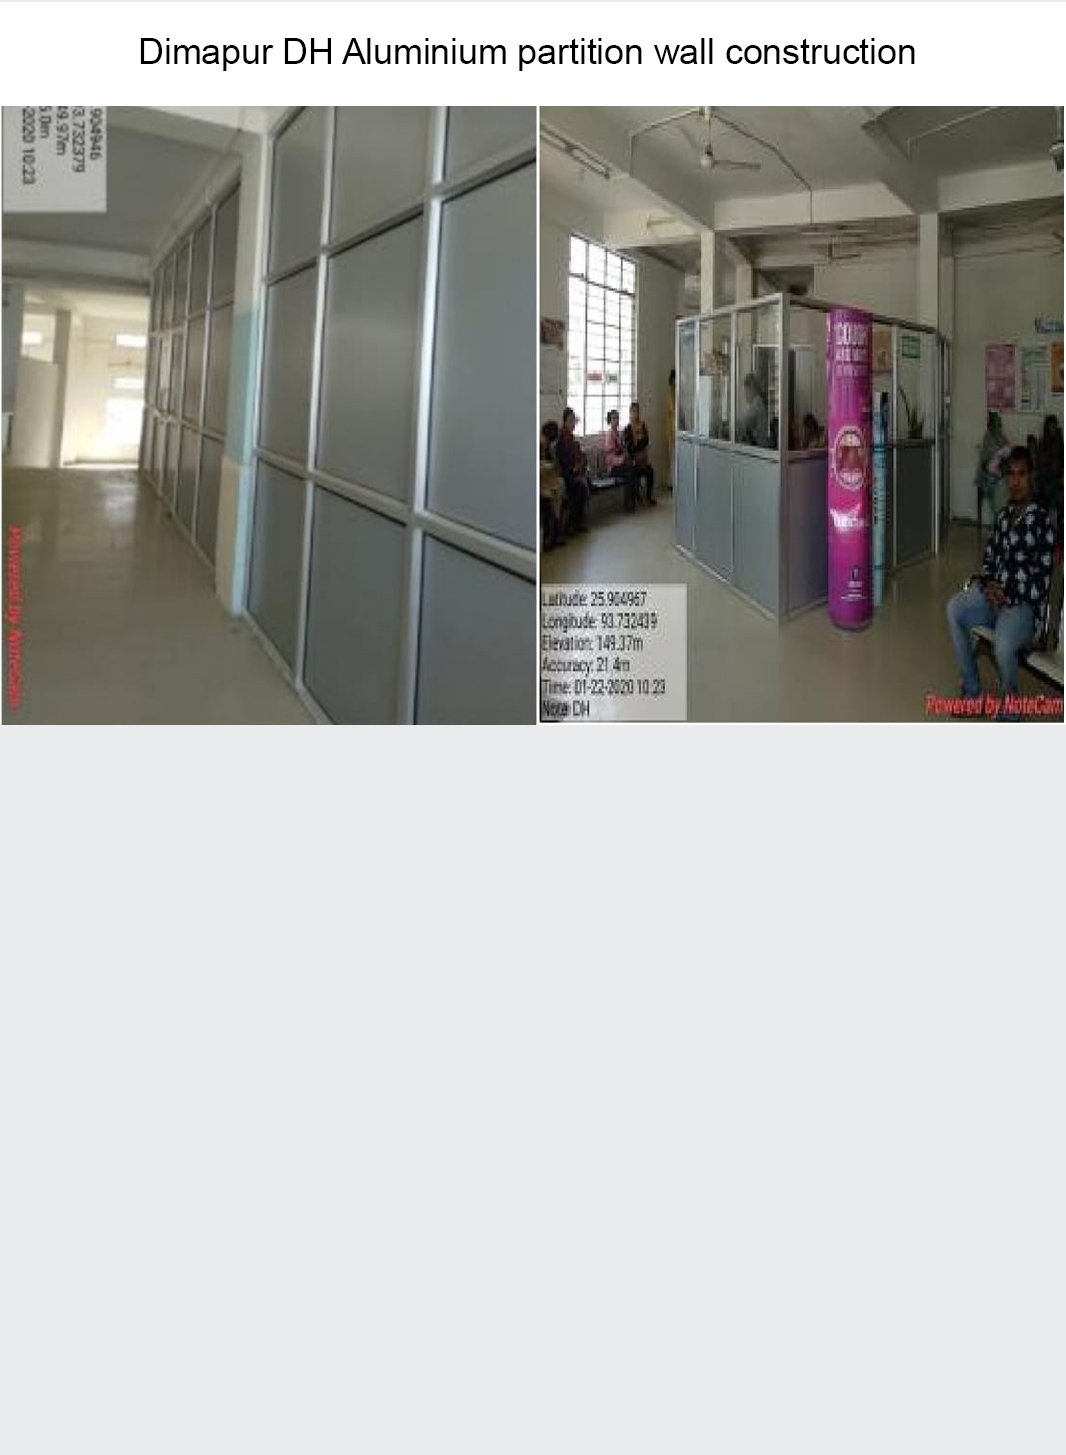 Dimapur-DH-Aluminium-partition-wall-construction